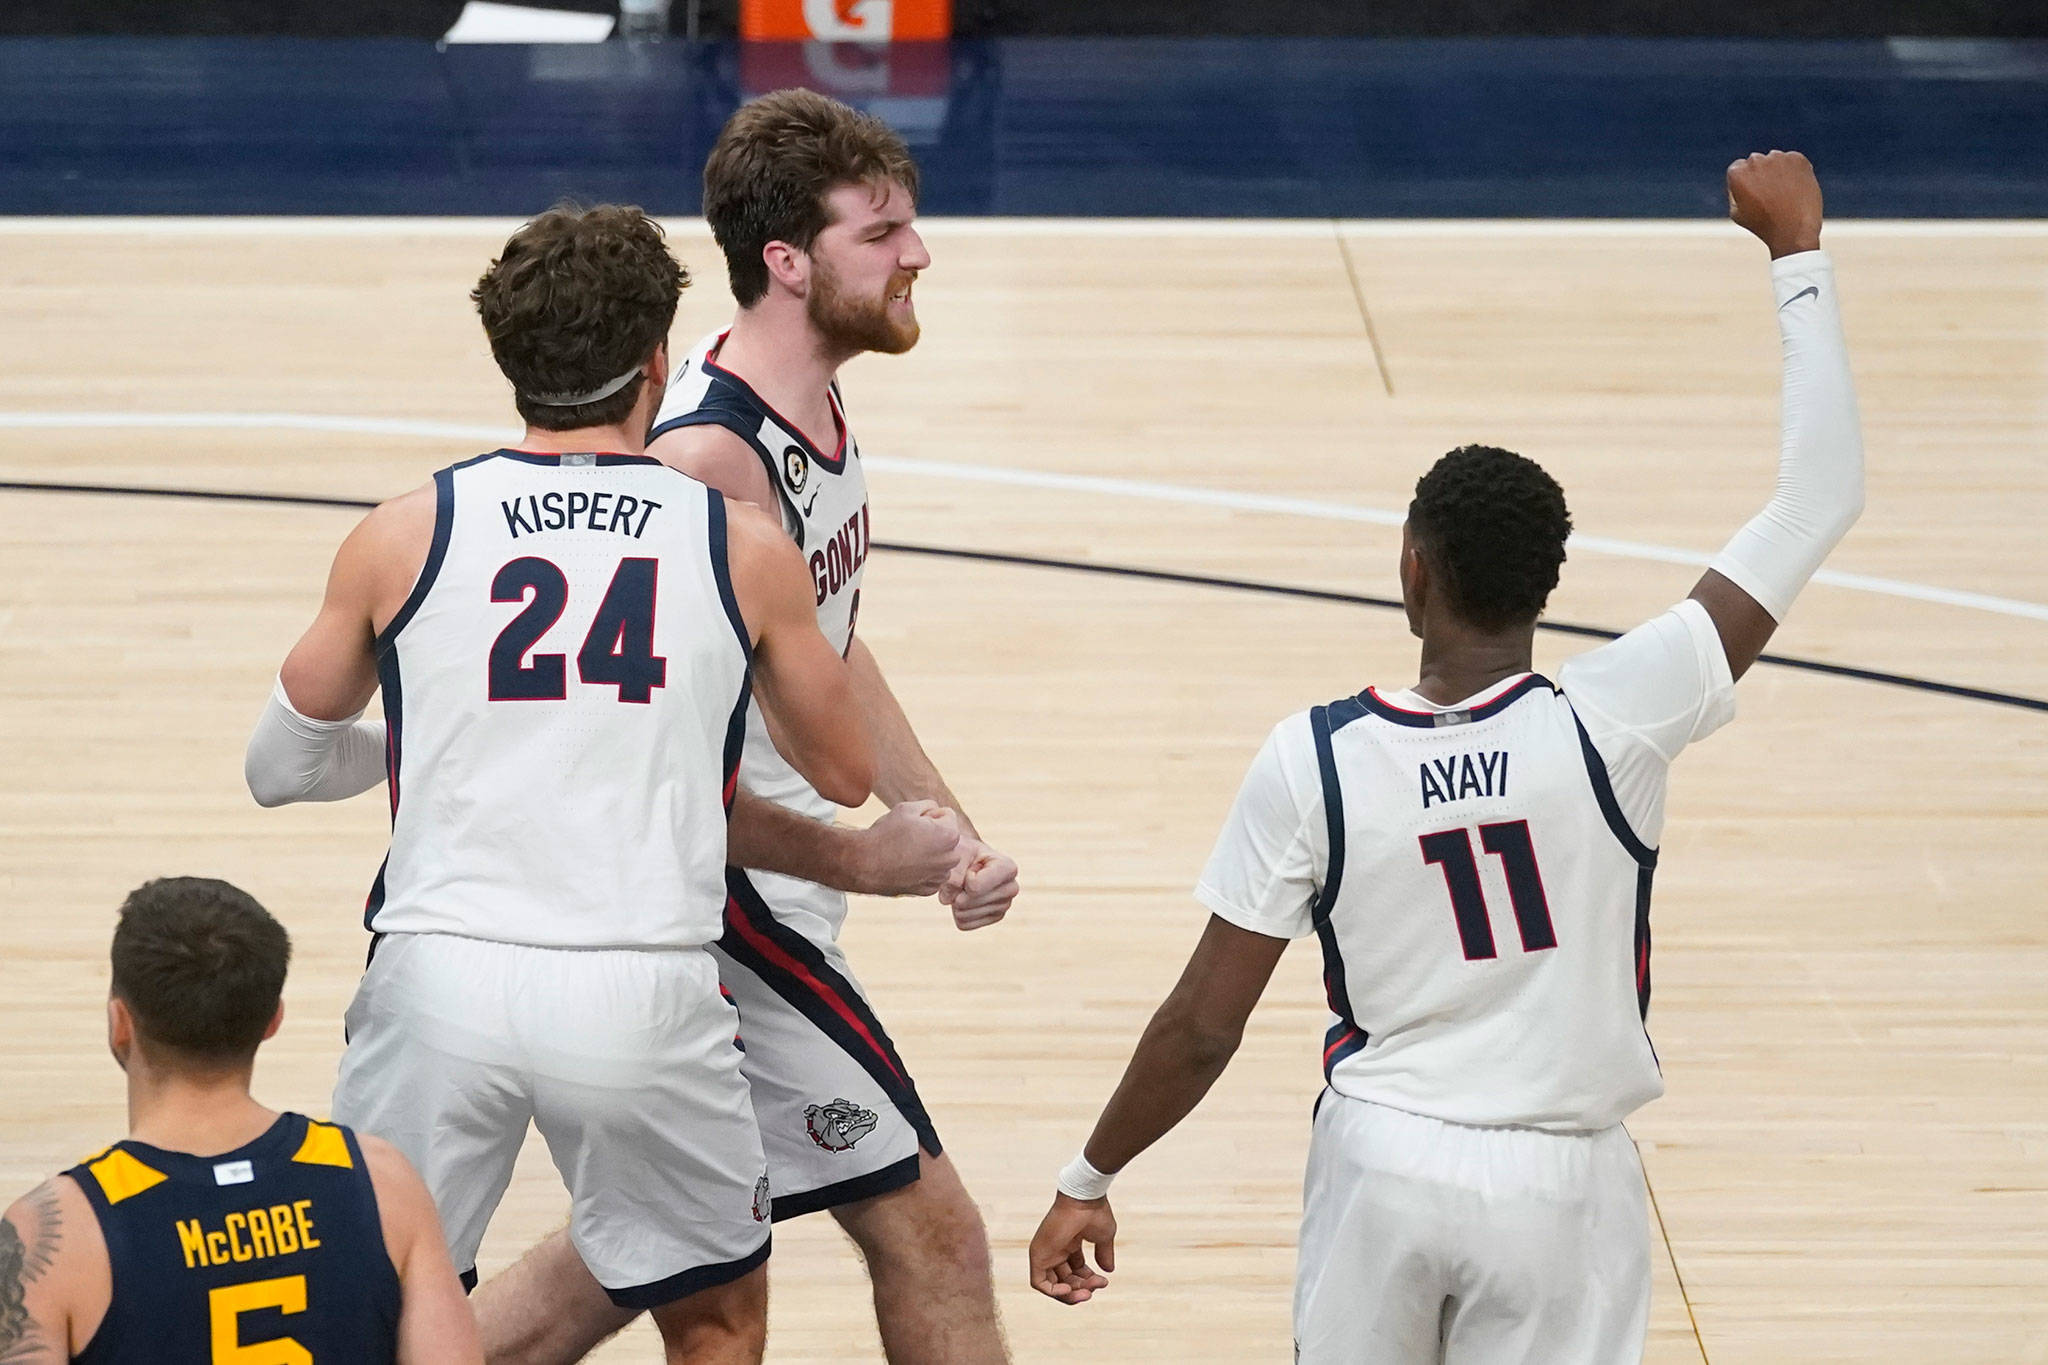 Gonzaga's Drew Timme (center) celebrates with Corey Kispert (24) and Joel Ayayi (11) during the second half of game against West Virginia on Dec. 2, 2020, in Indianapolis. (AP Photo/Darron Cummings)